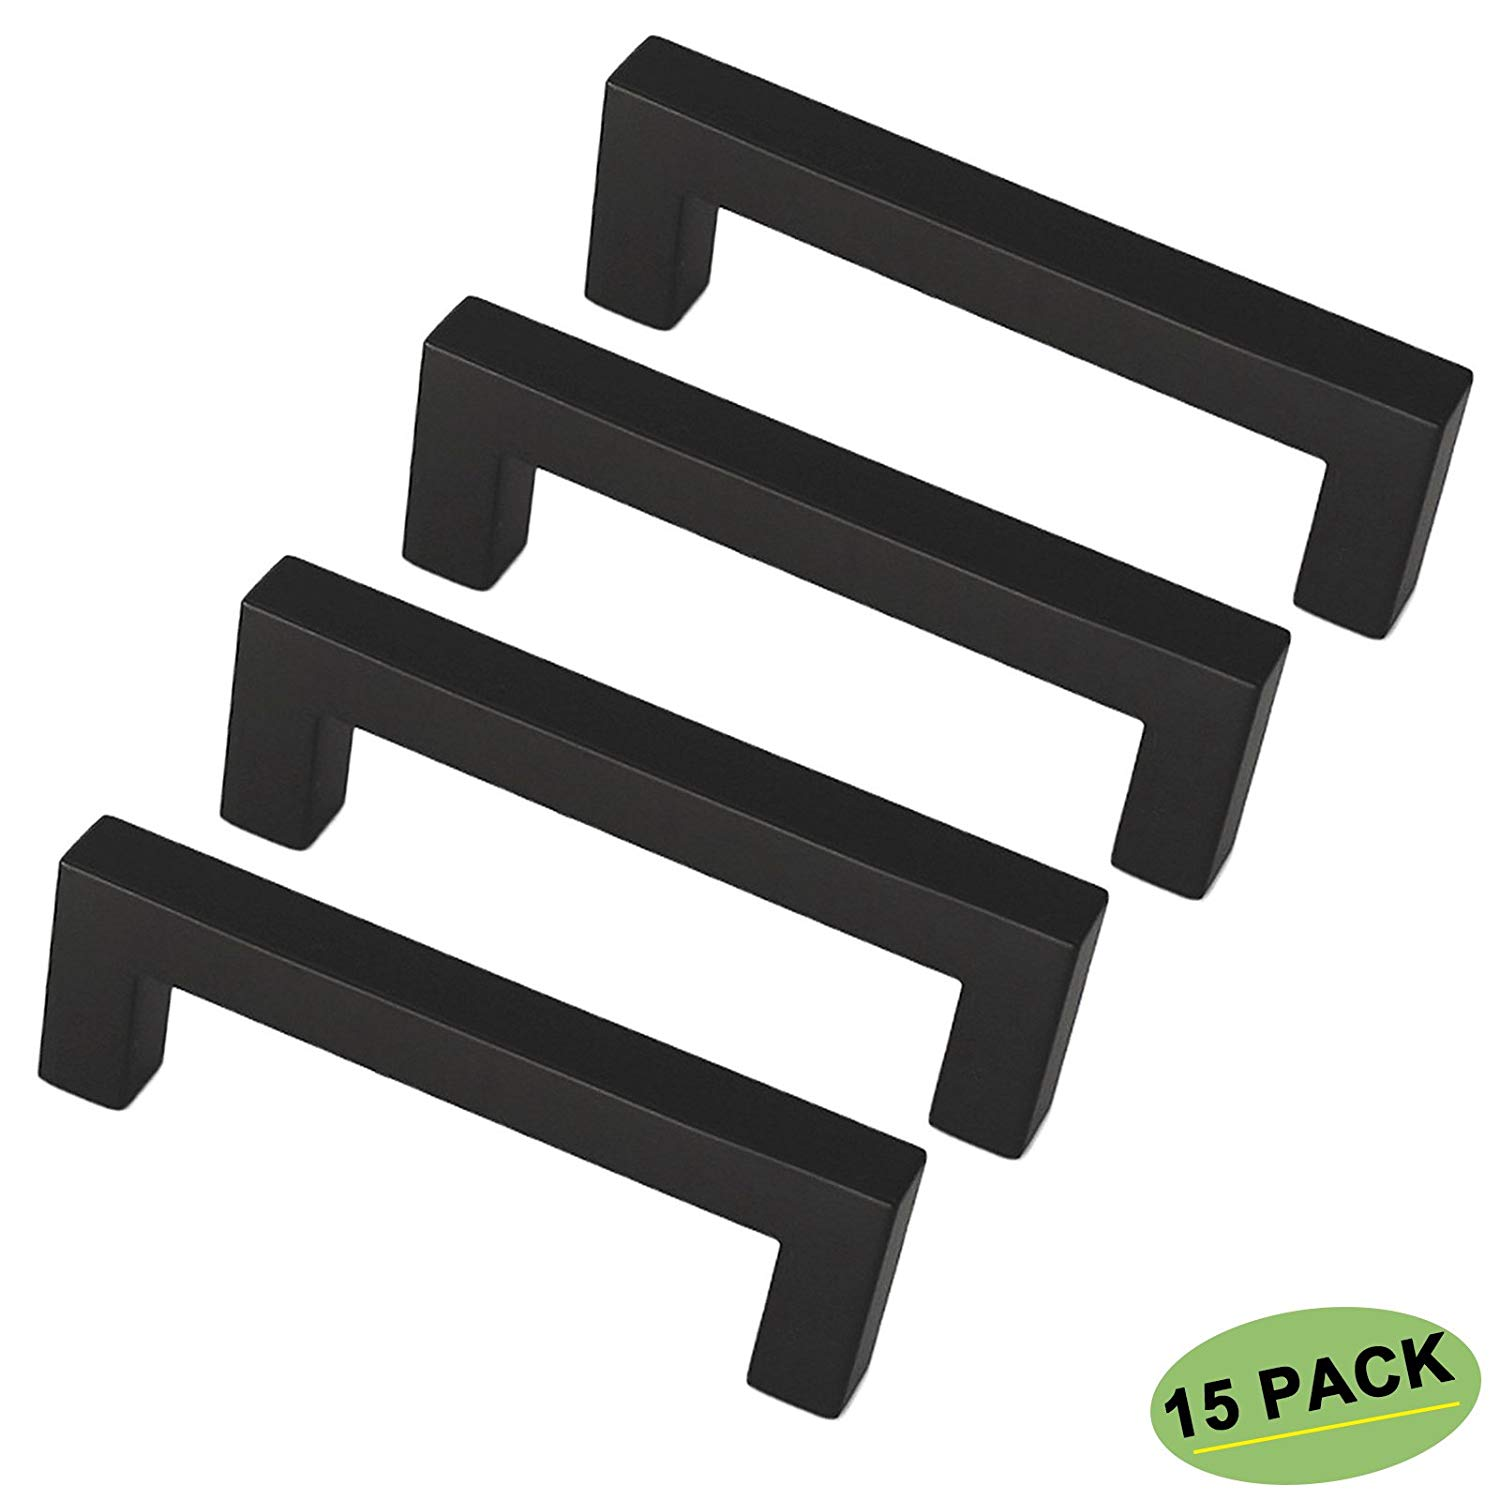 homdiy Black Pulls for Cabinets Matte Black Cabinet Pull 15 Pack HDJ12BK 3 inch Center to Center Black Kitchen Hardware Black Square Bar Cabinet Pull